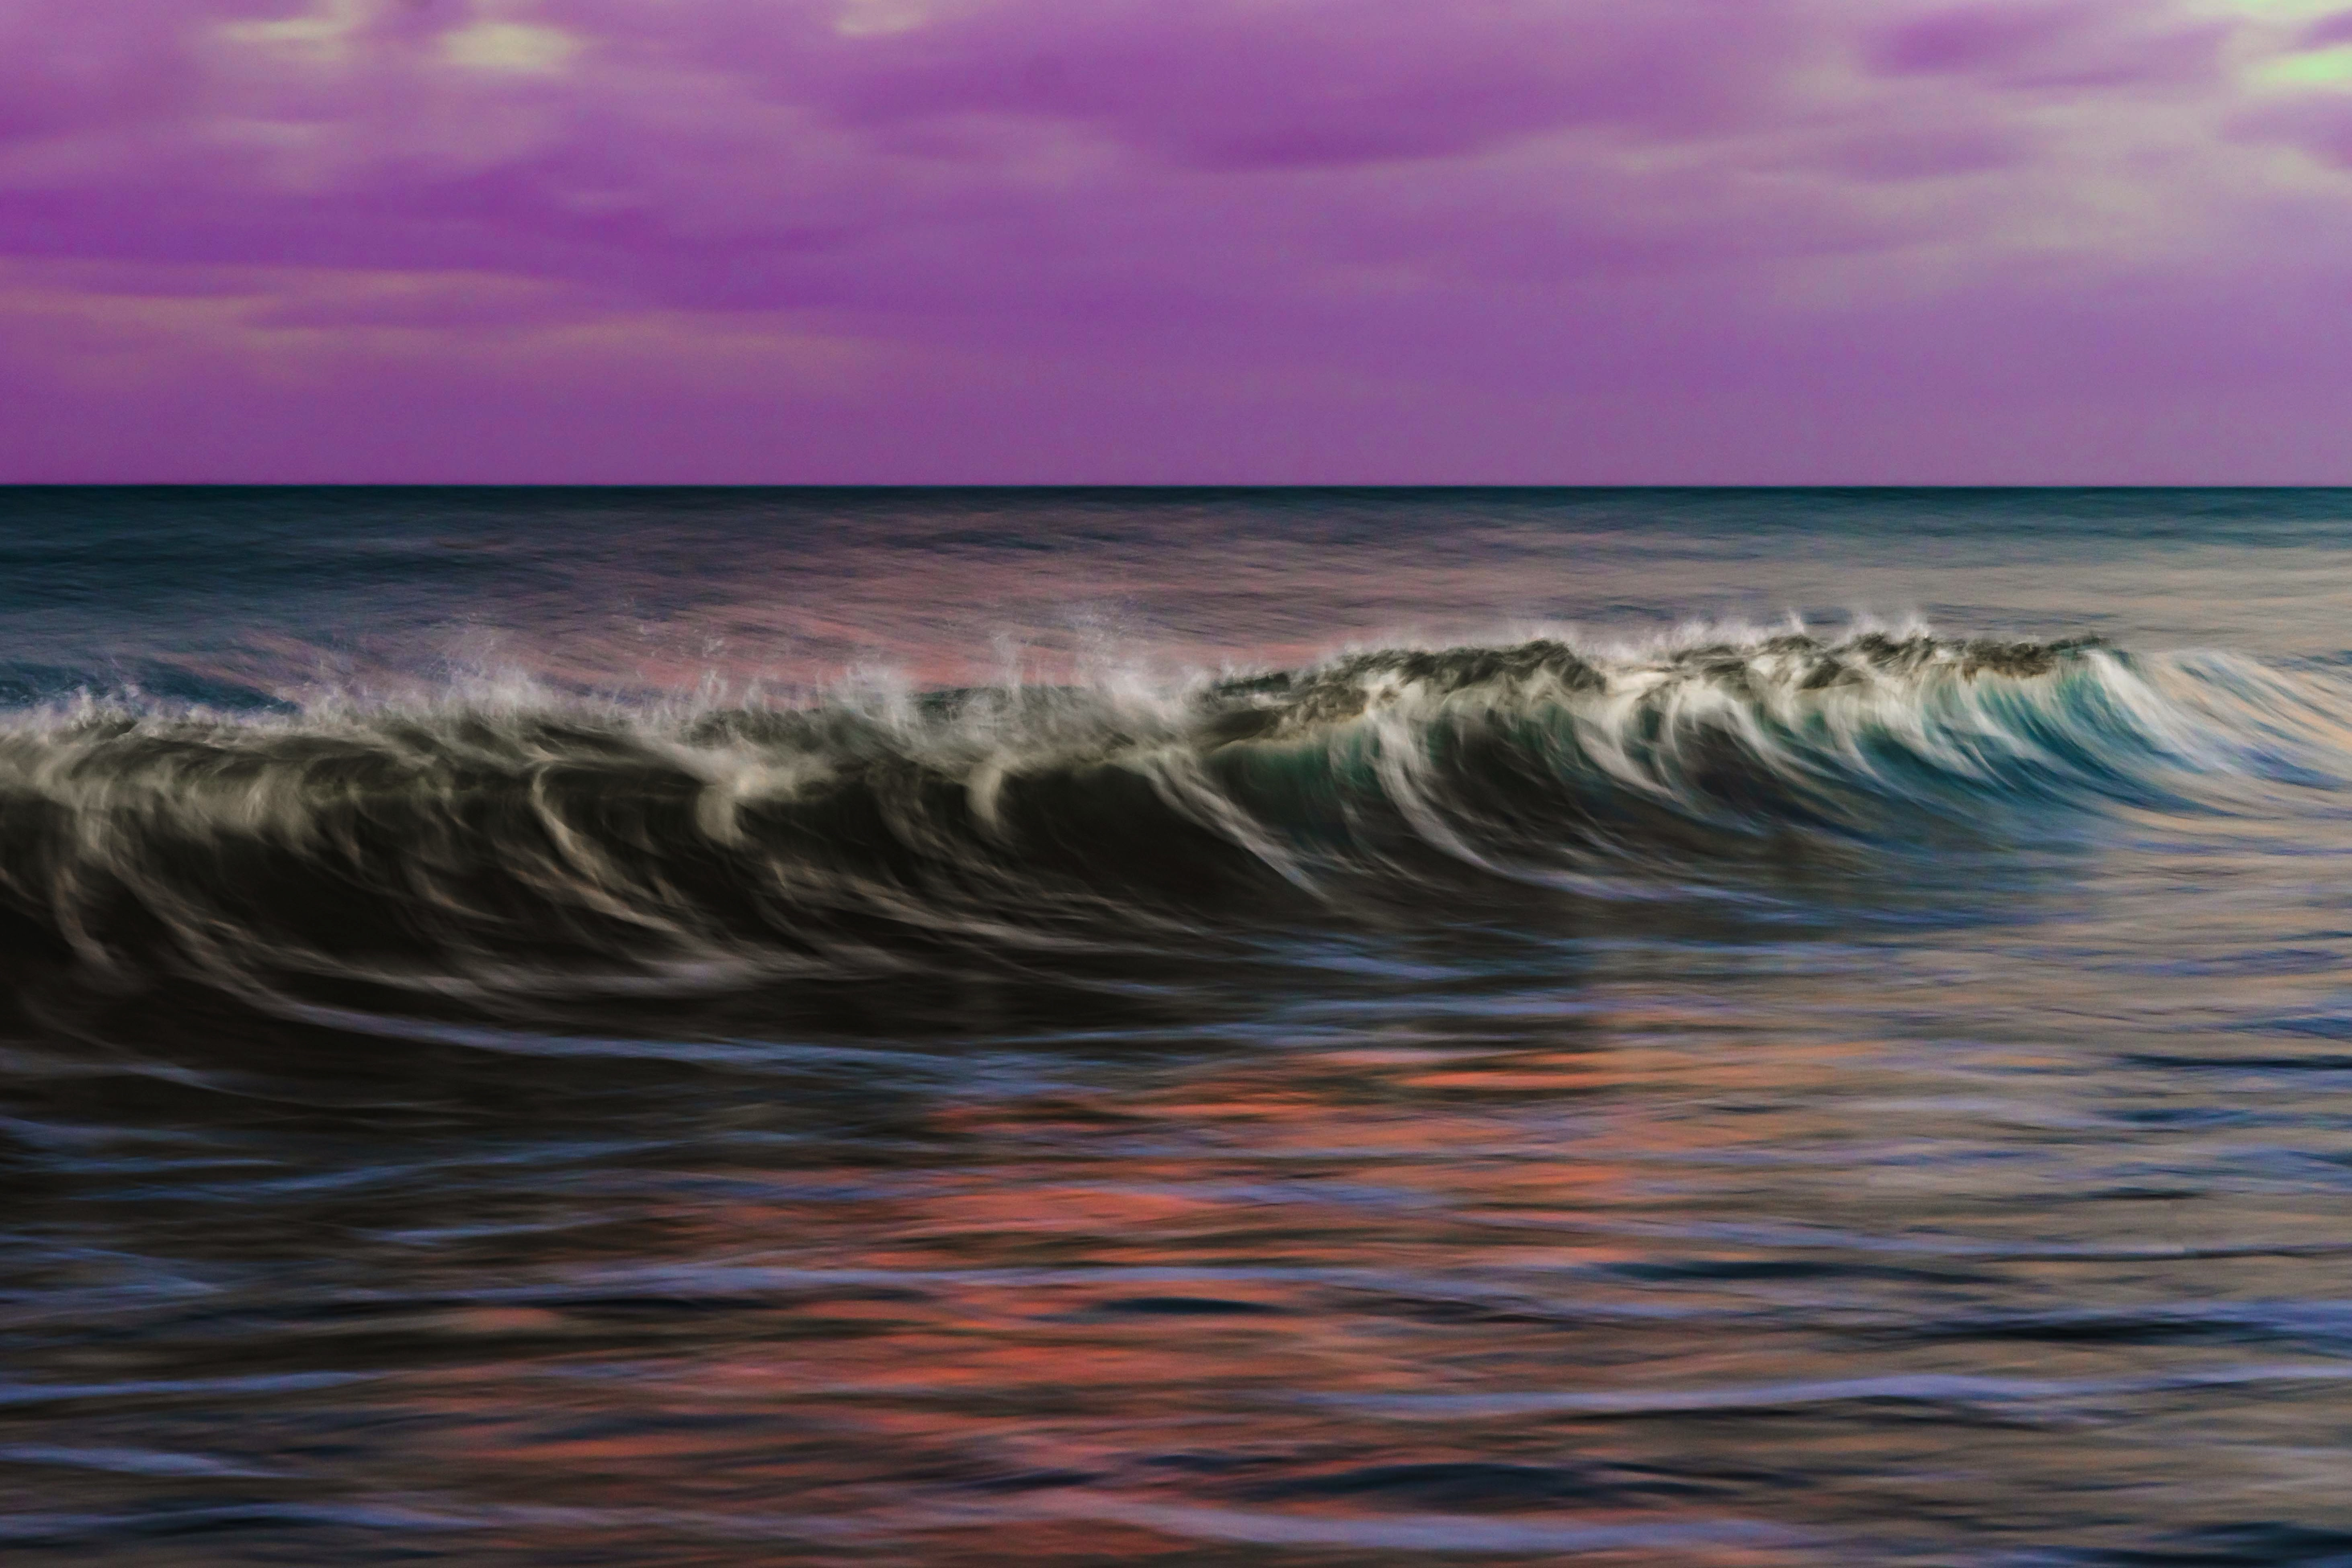 Abstract wave on water with slow shutter speed